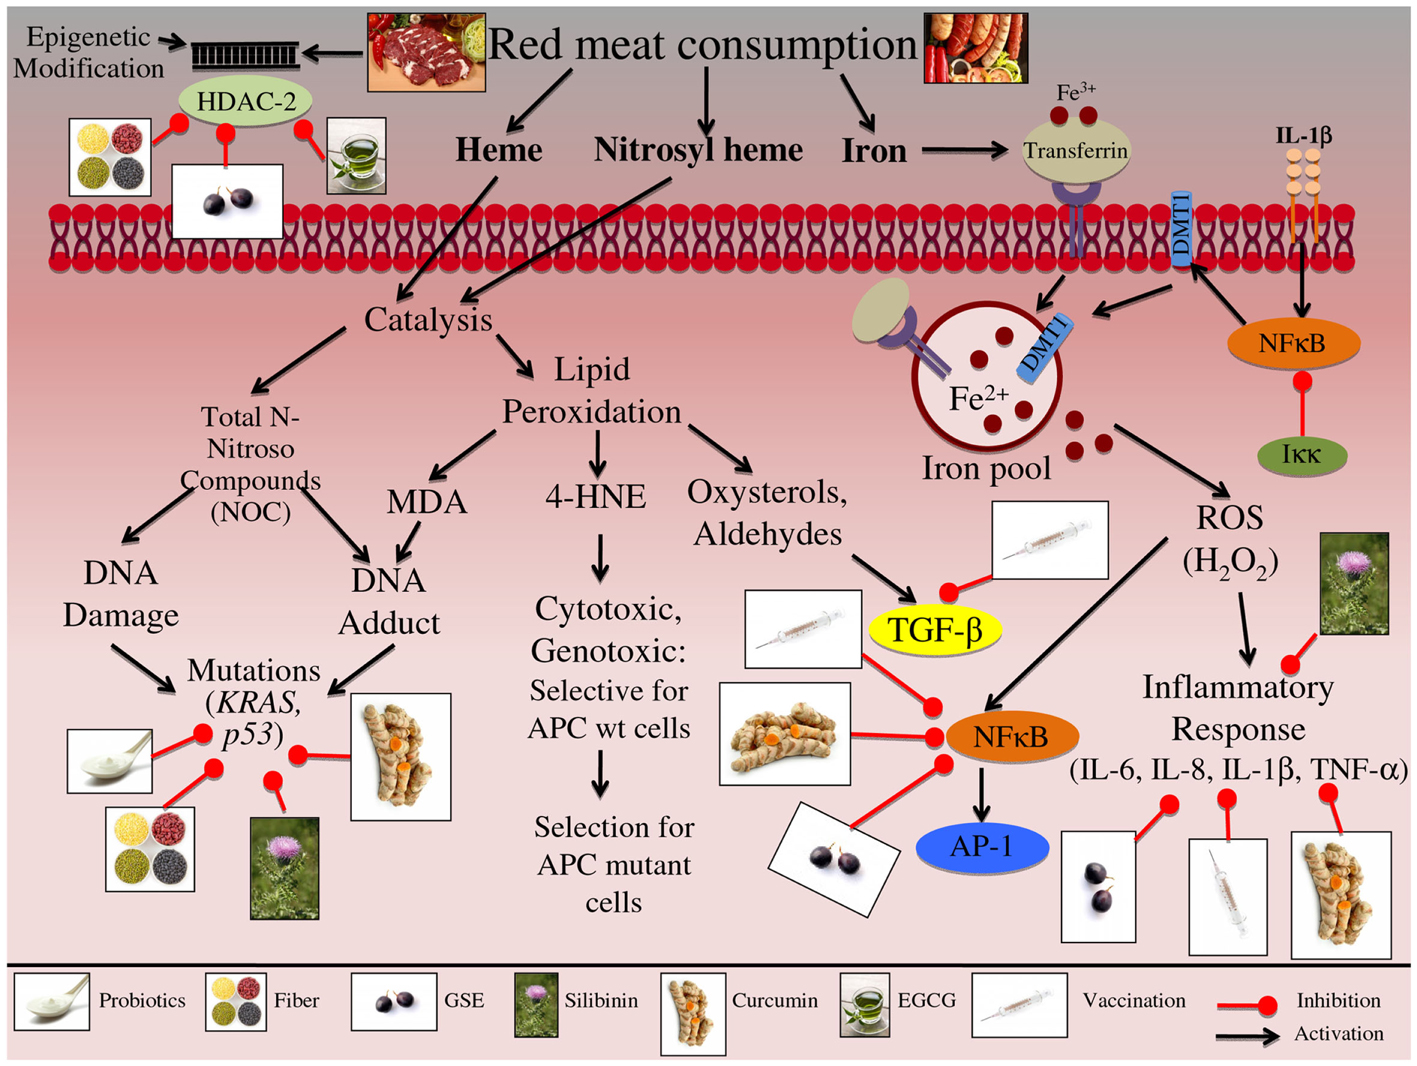 colorectal cancer and red meat